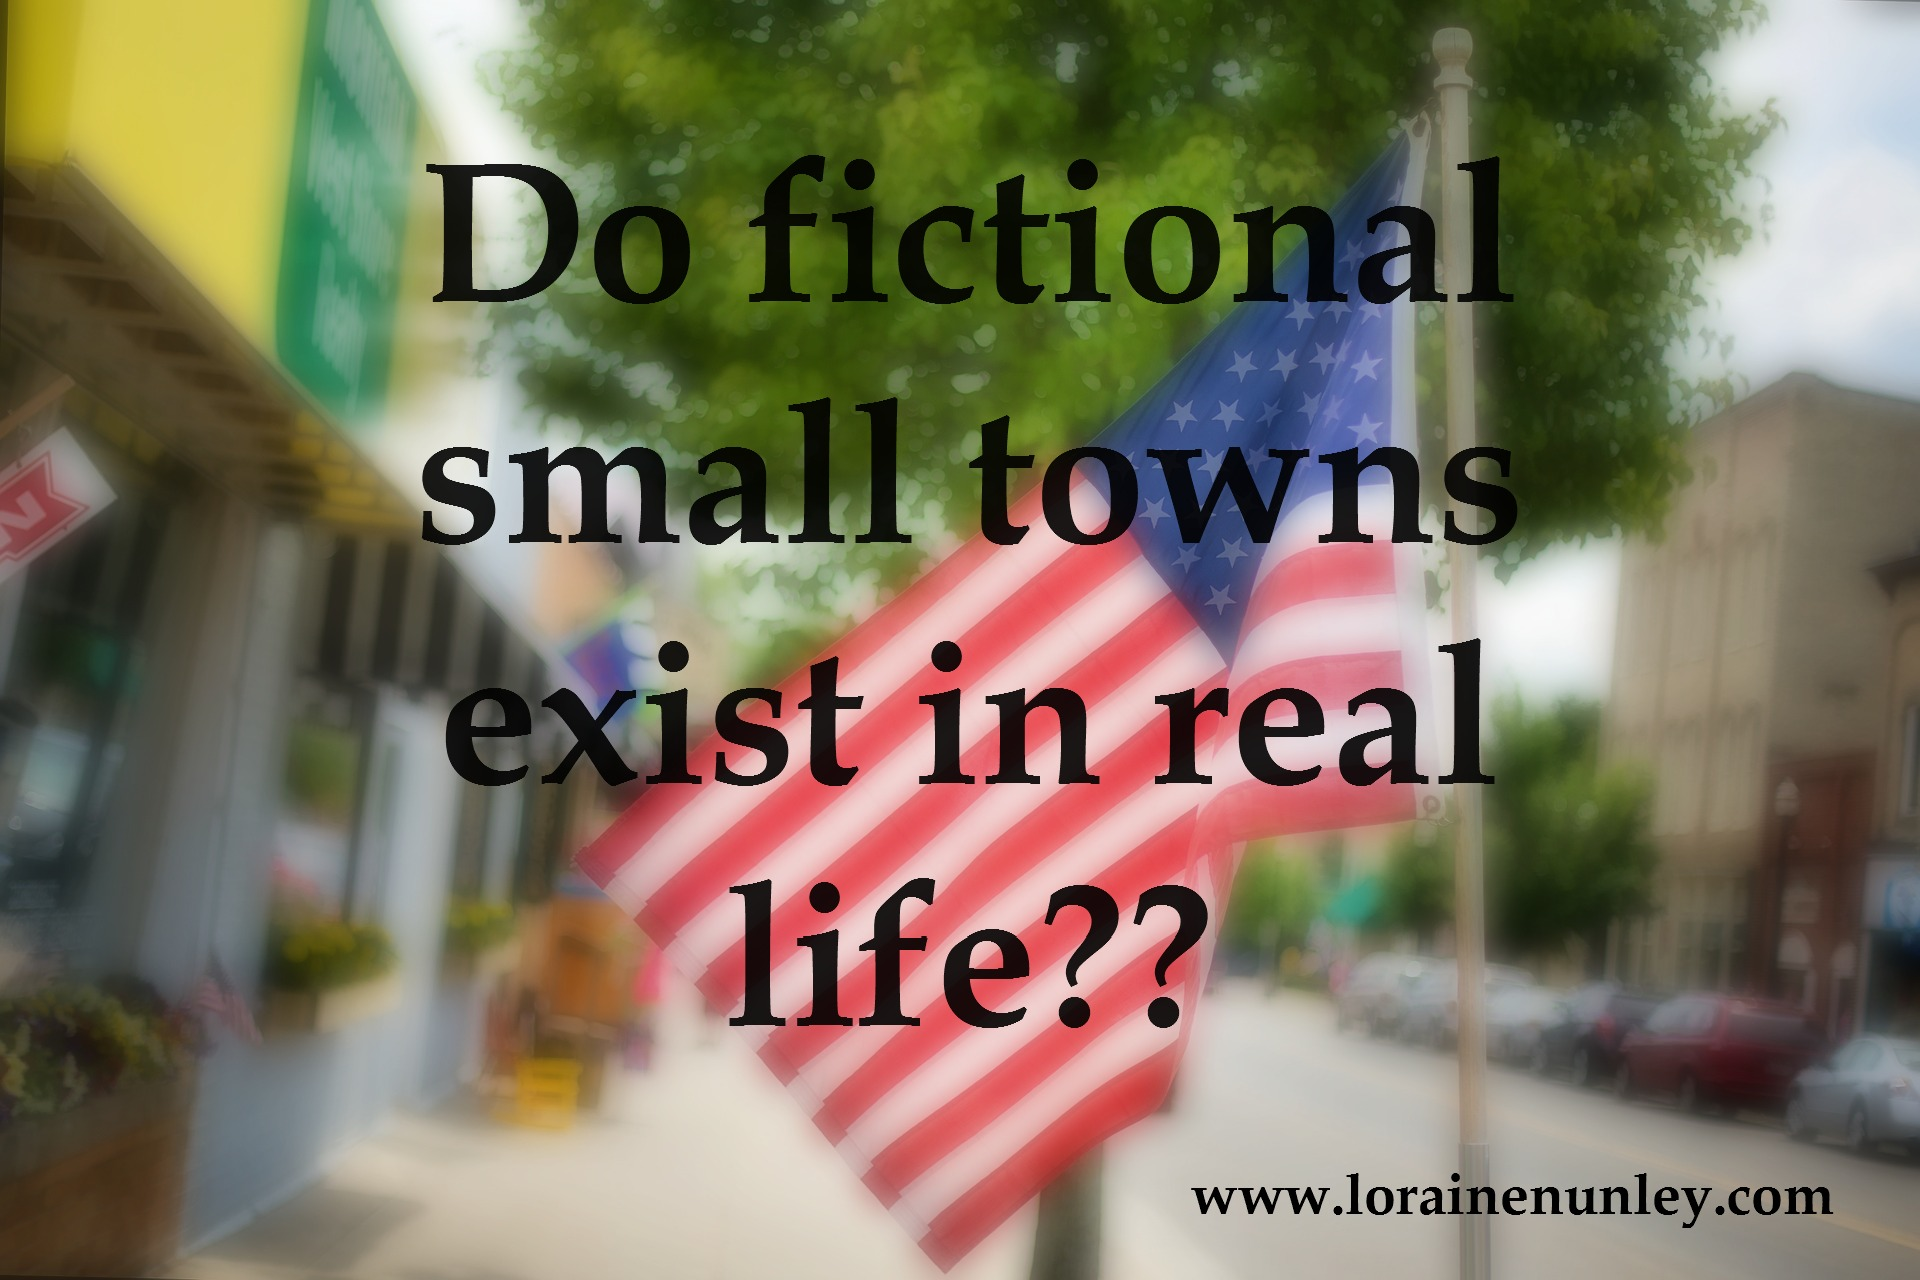 Do fictional small towns exist in real life?